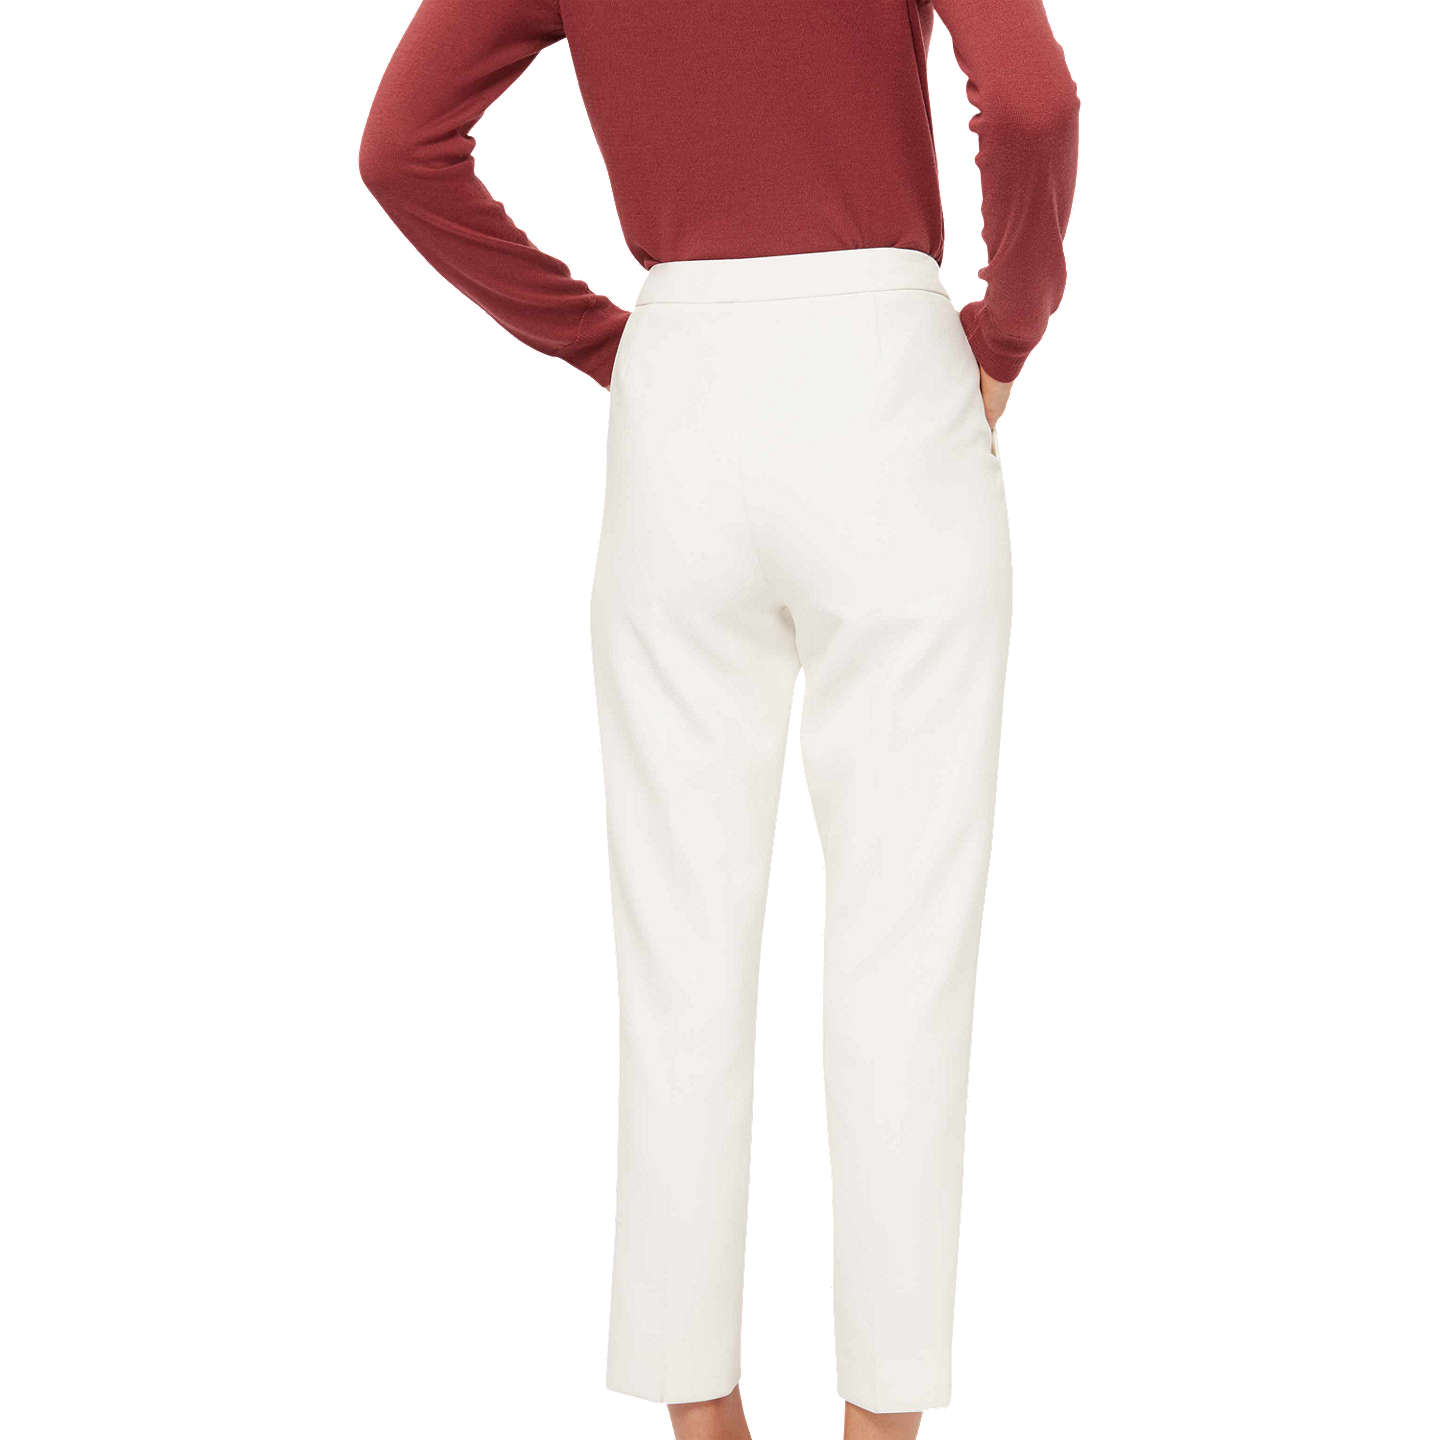 BuyJaeger Cropped Stretch Trousers, Ivory, 6 Online at johnlewis.com